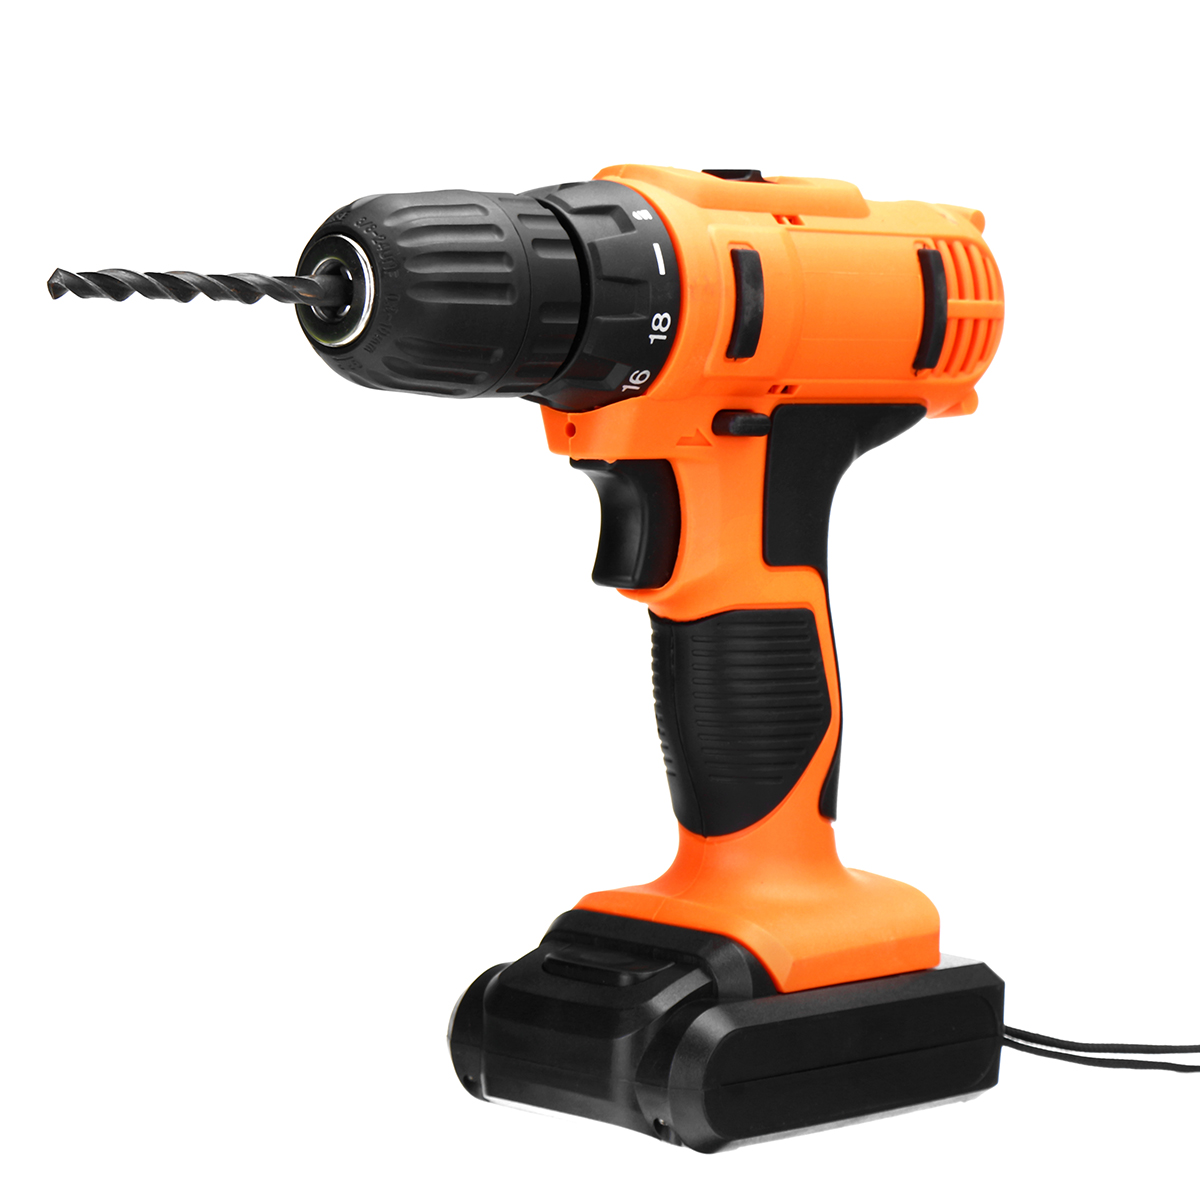 18V 20N.m DC Lithium-Ion Battery 2-Speed Electric Cordless Drill Mini Screwdriver Wireless Power Driver 18v dc lithium ion battery cordless drill driver power tools screwdriver electric drill with battery included